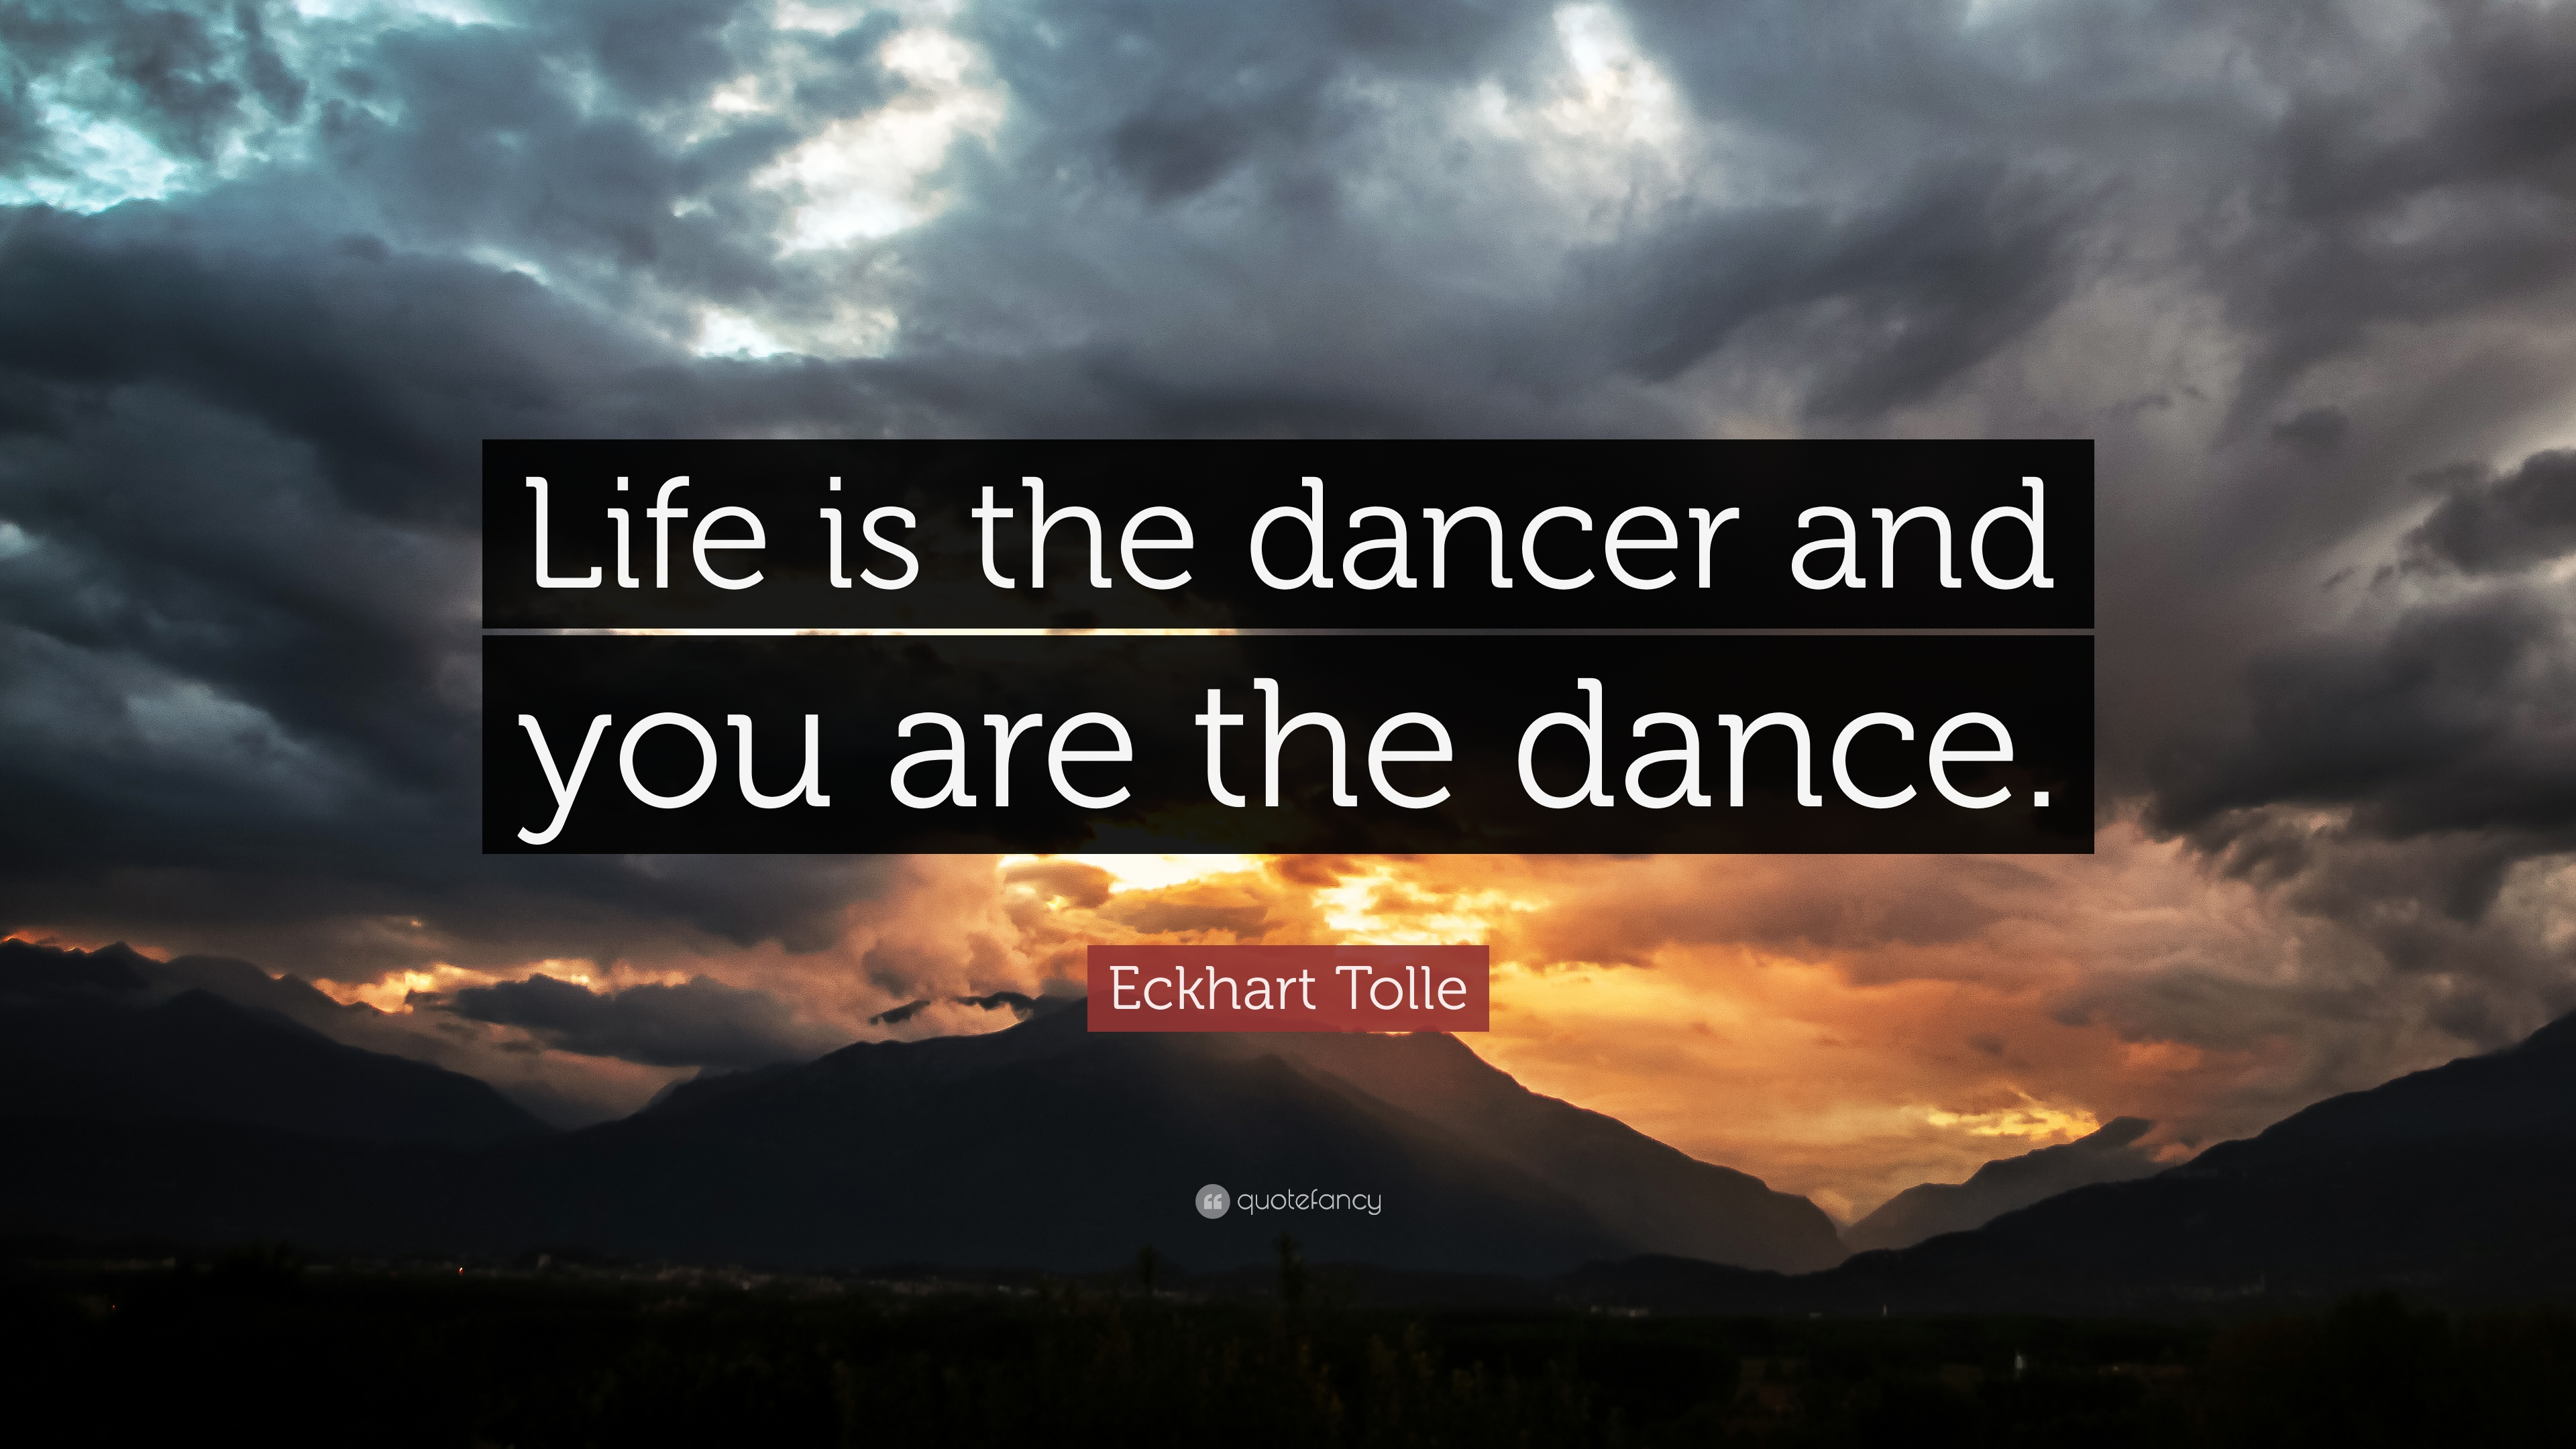 Dancer Quotes Life Eckhart Tolle Quote Life is